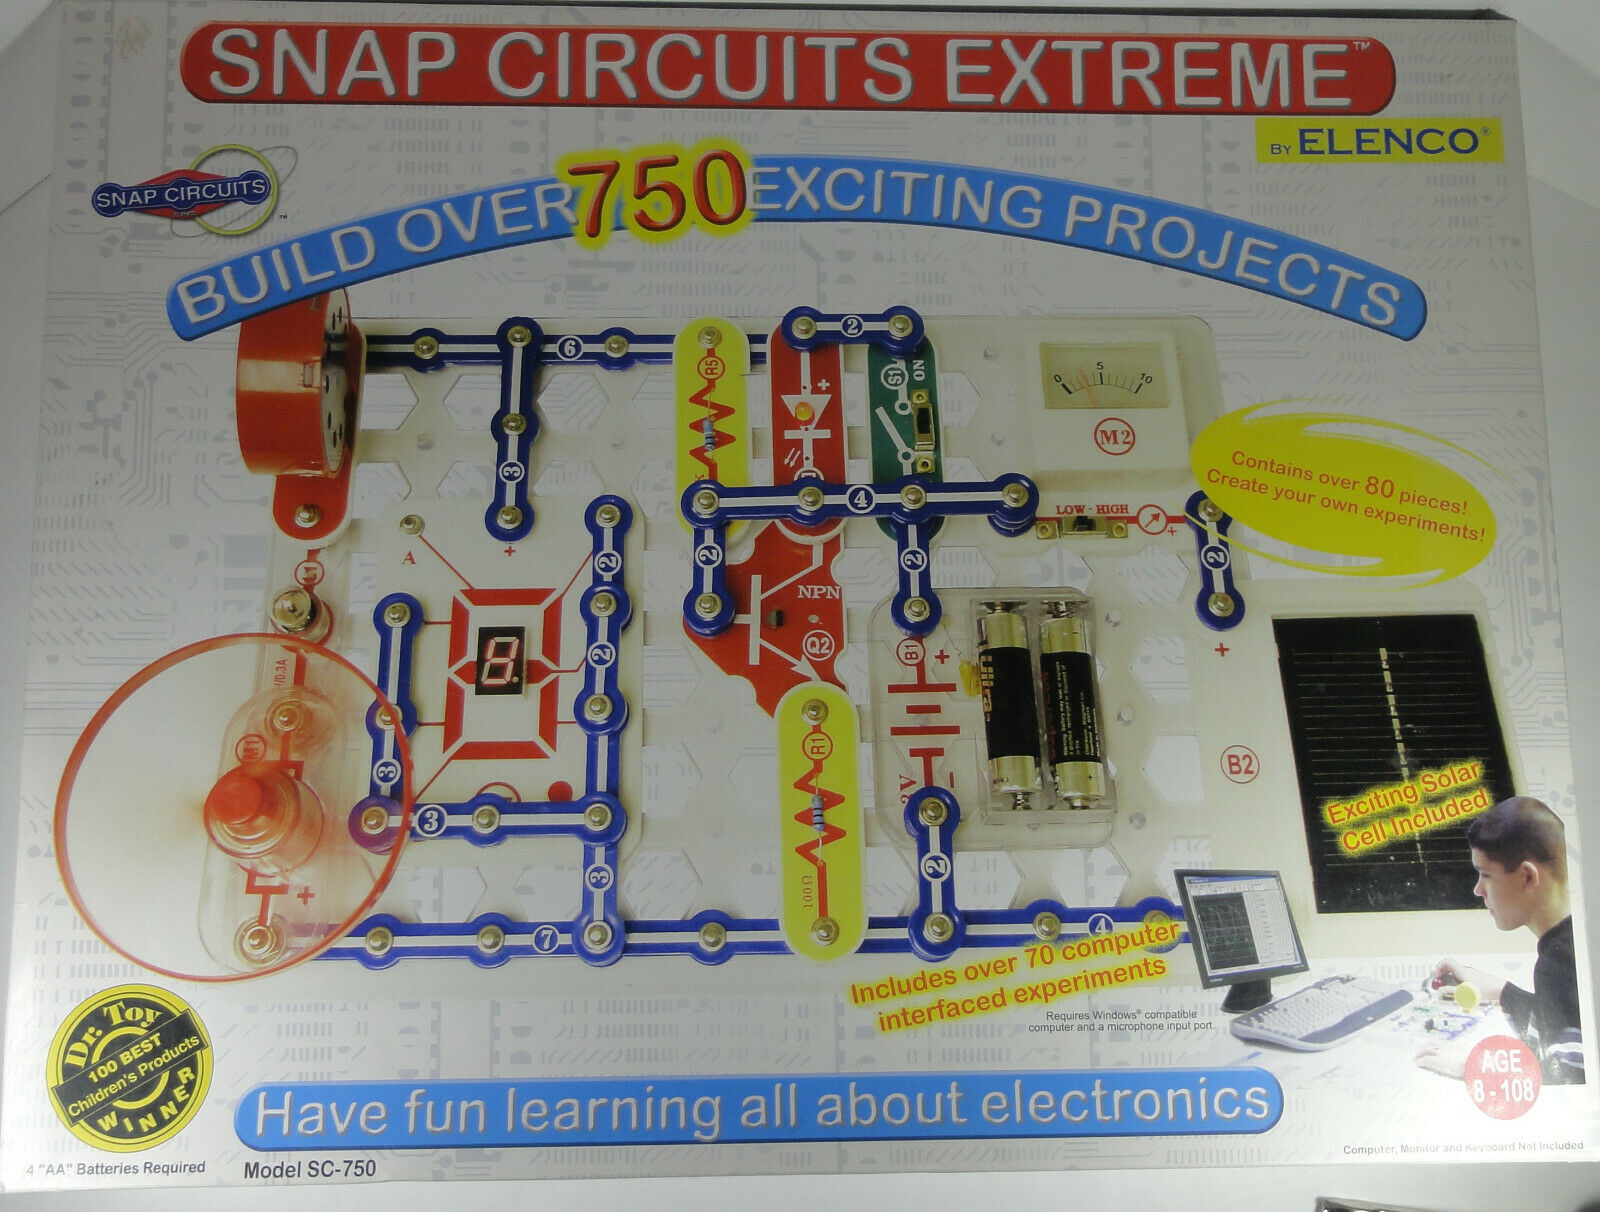 Snap Circuits Extreme - Build over 750 Electronic Projects - Model SC-750